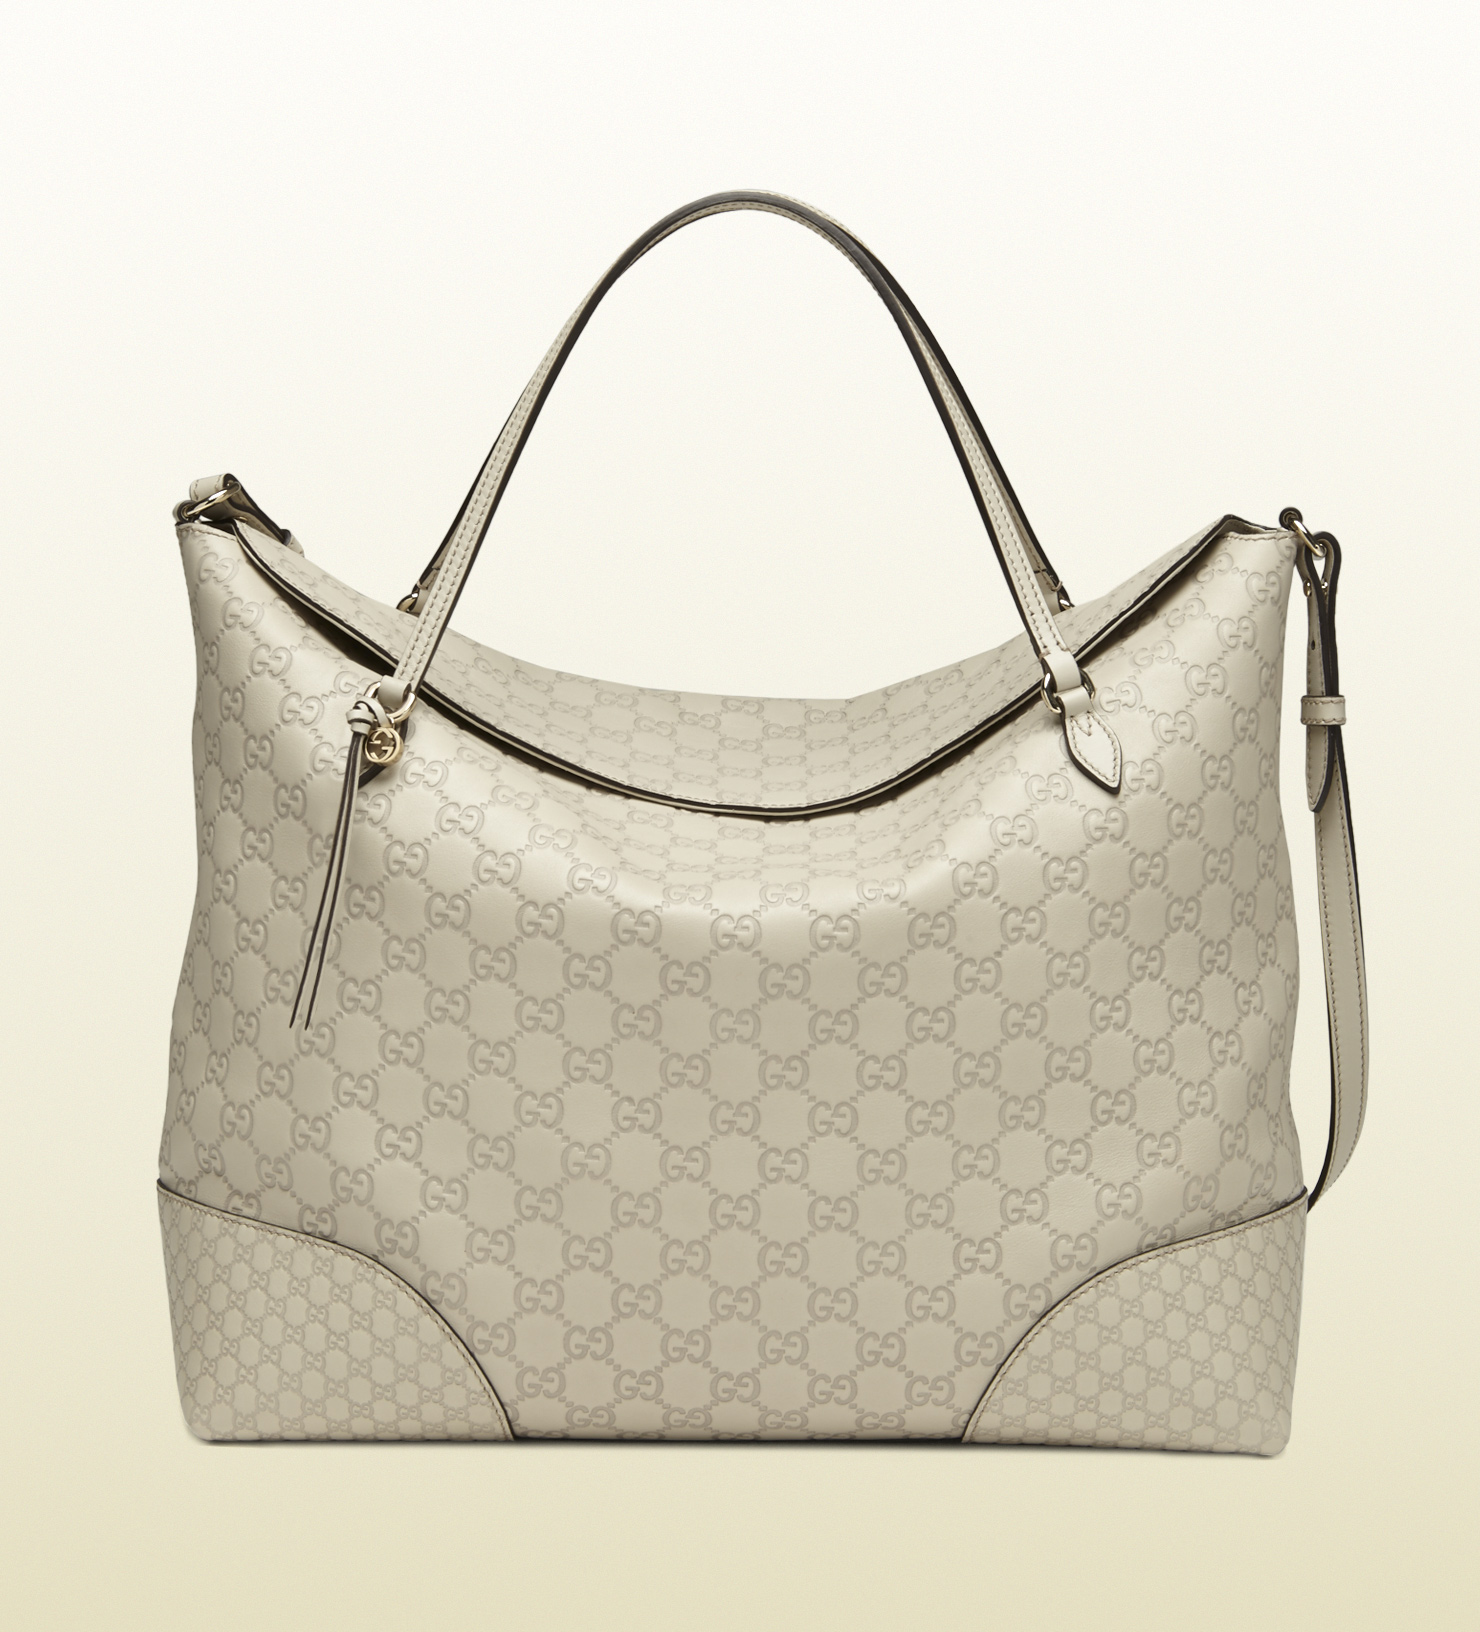 fecb16ee8d3 Lyst - Gucci Bree Ssima Leather Tote in Gray